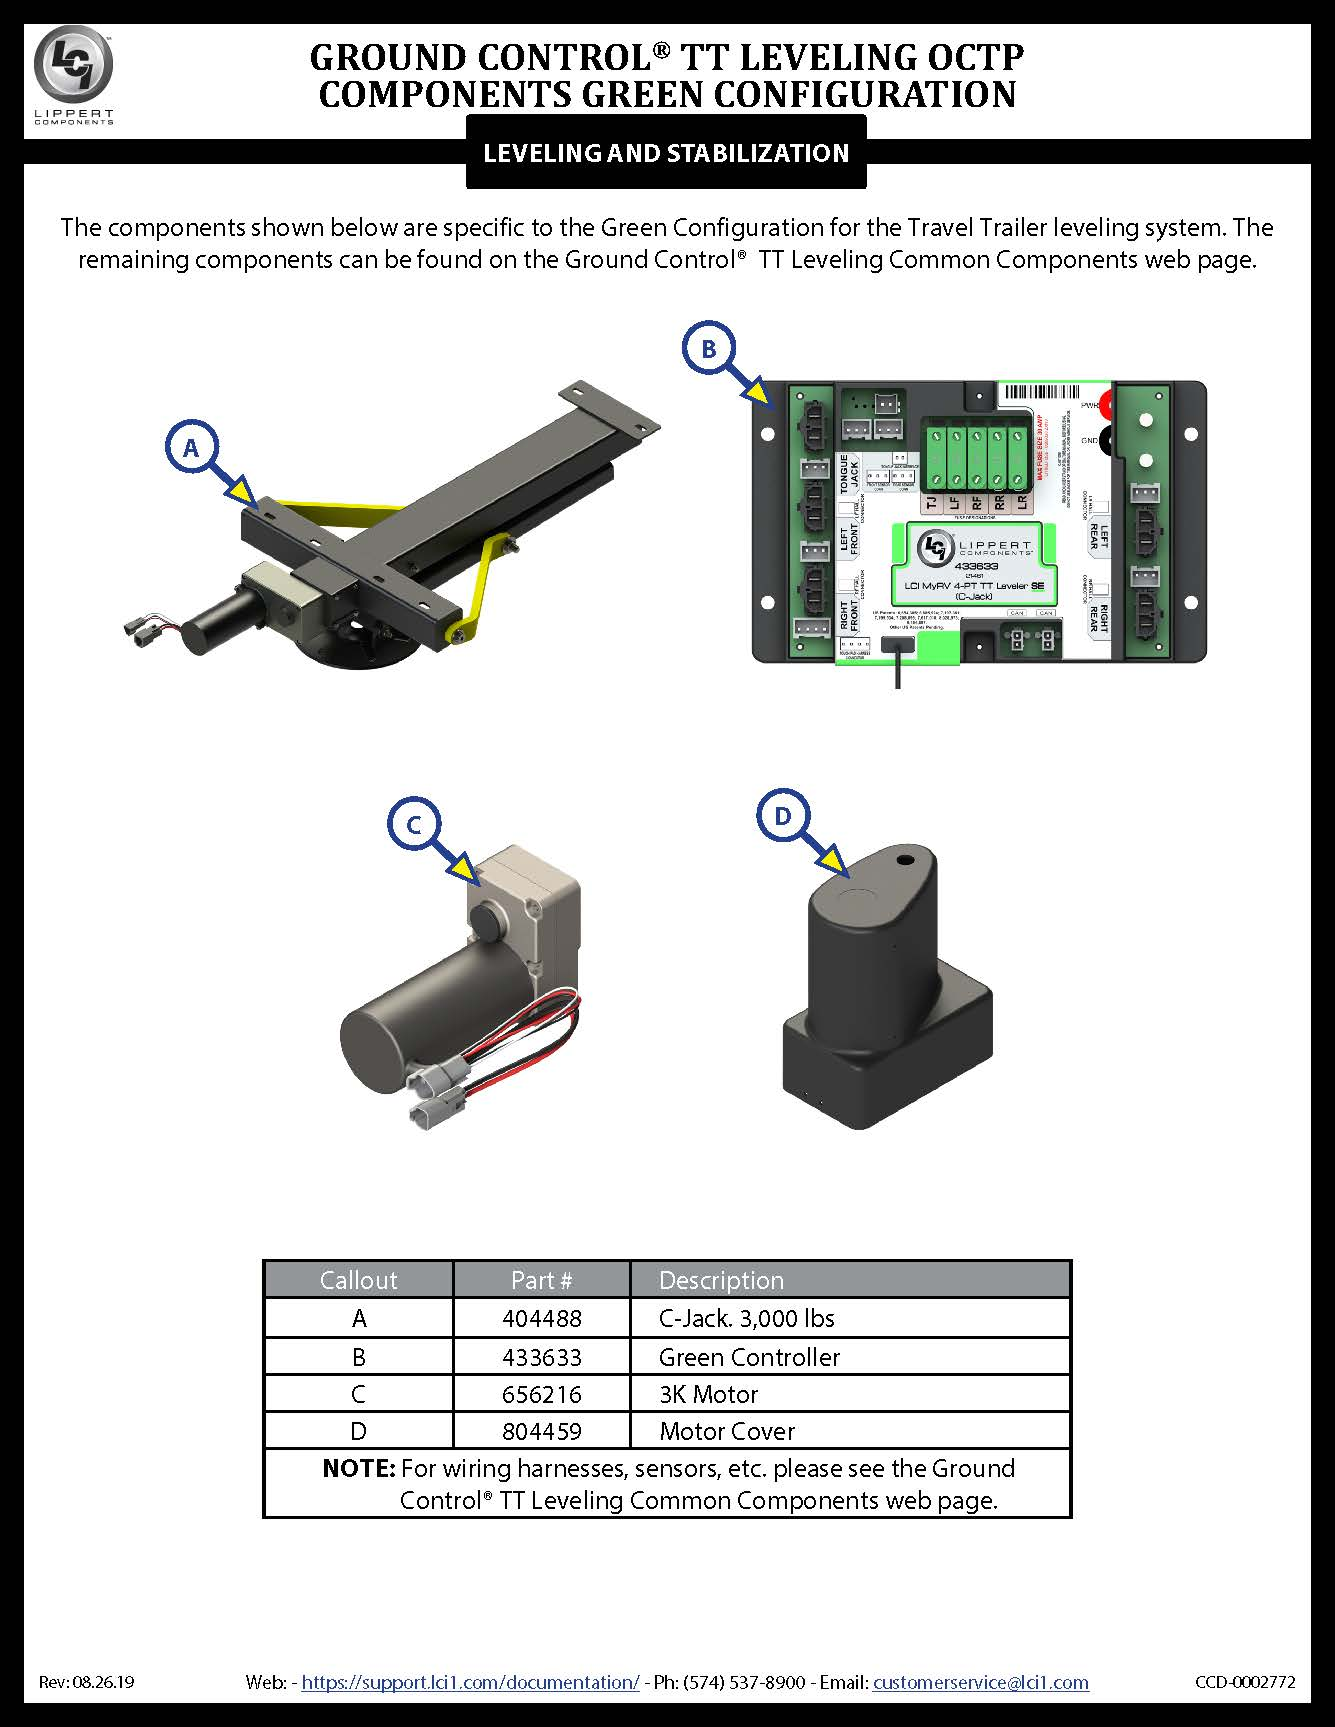 Ground Control® TT Leveling OCTP Green Configuration Components